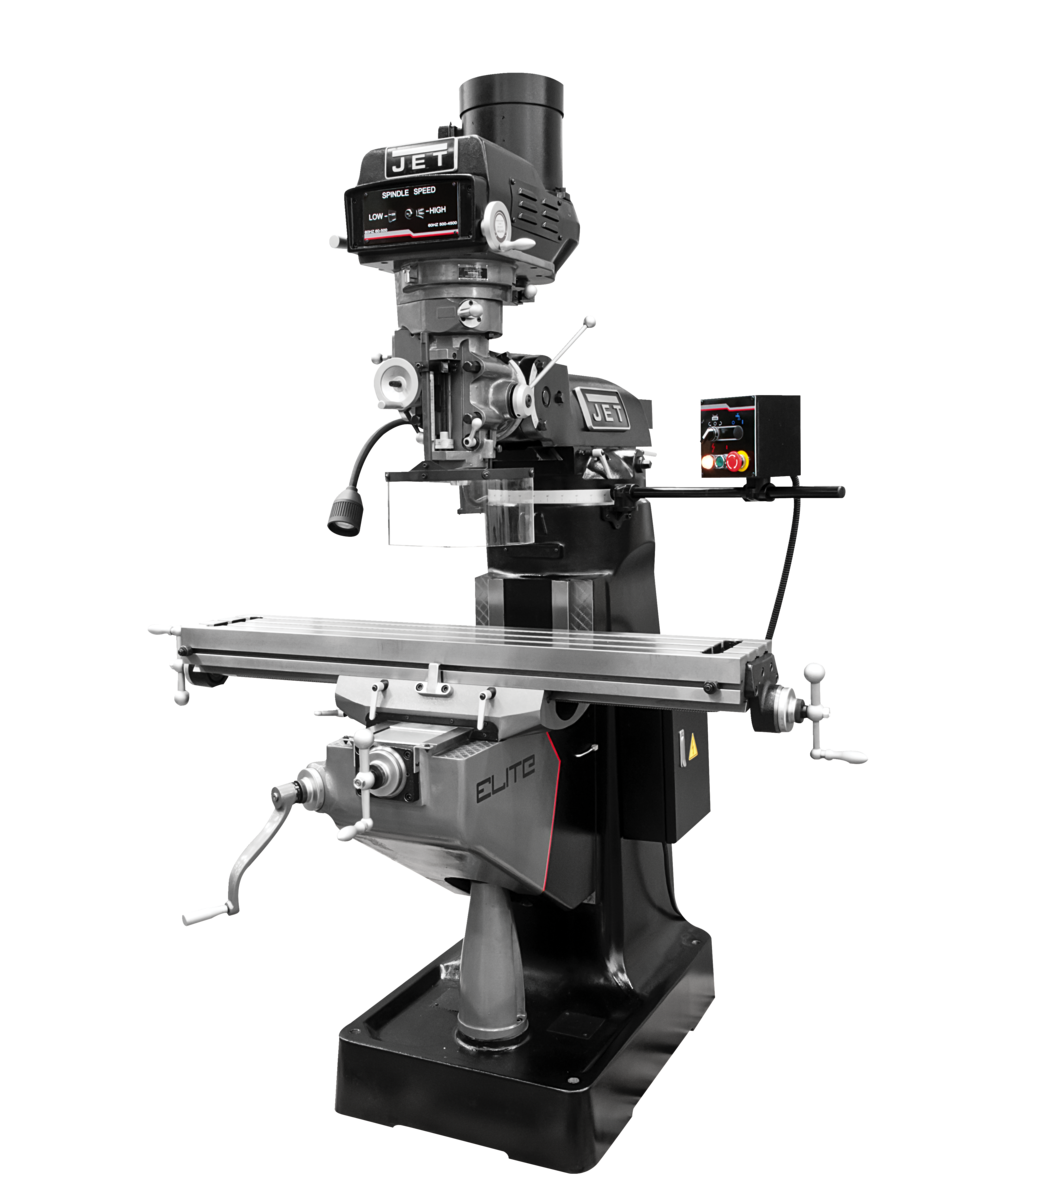 ETM-949 Mill with 2-Axis ACU-RITE 203 DRO and Servo X, Y-Axis Powerfeeds